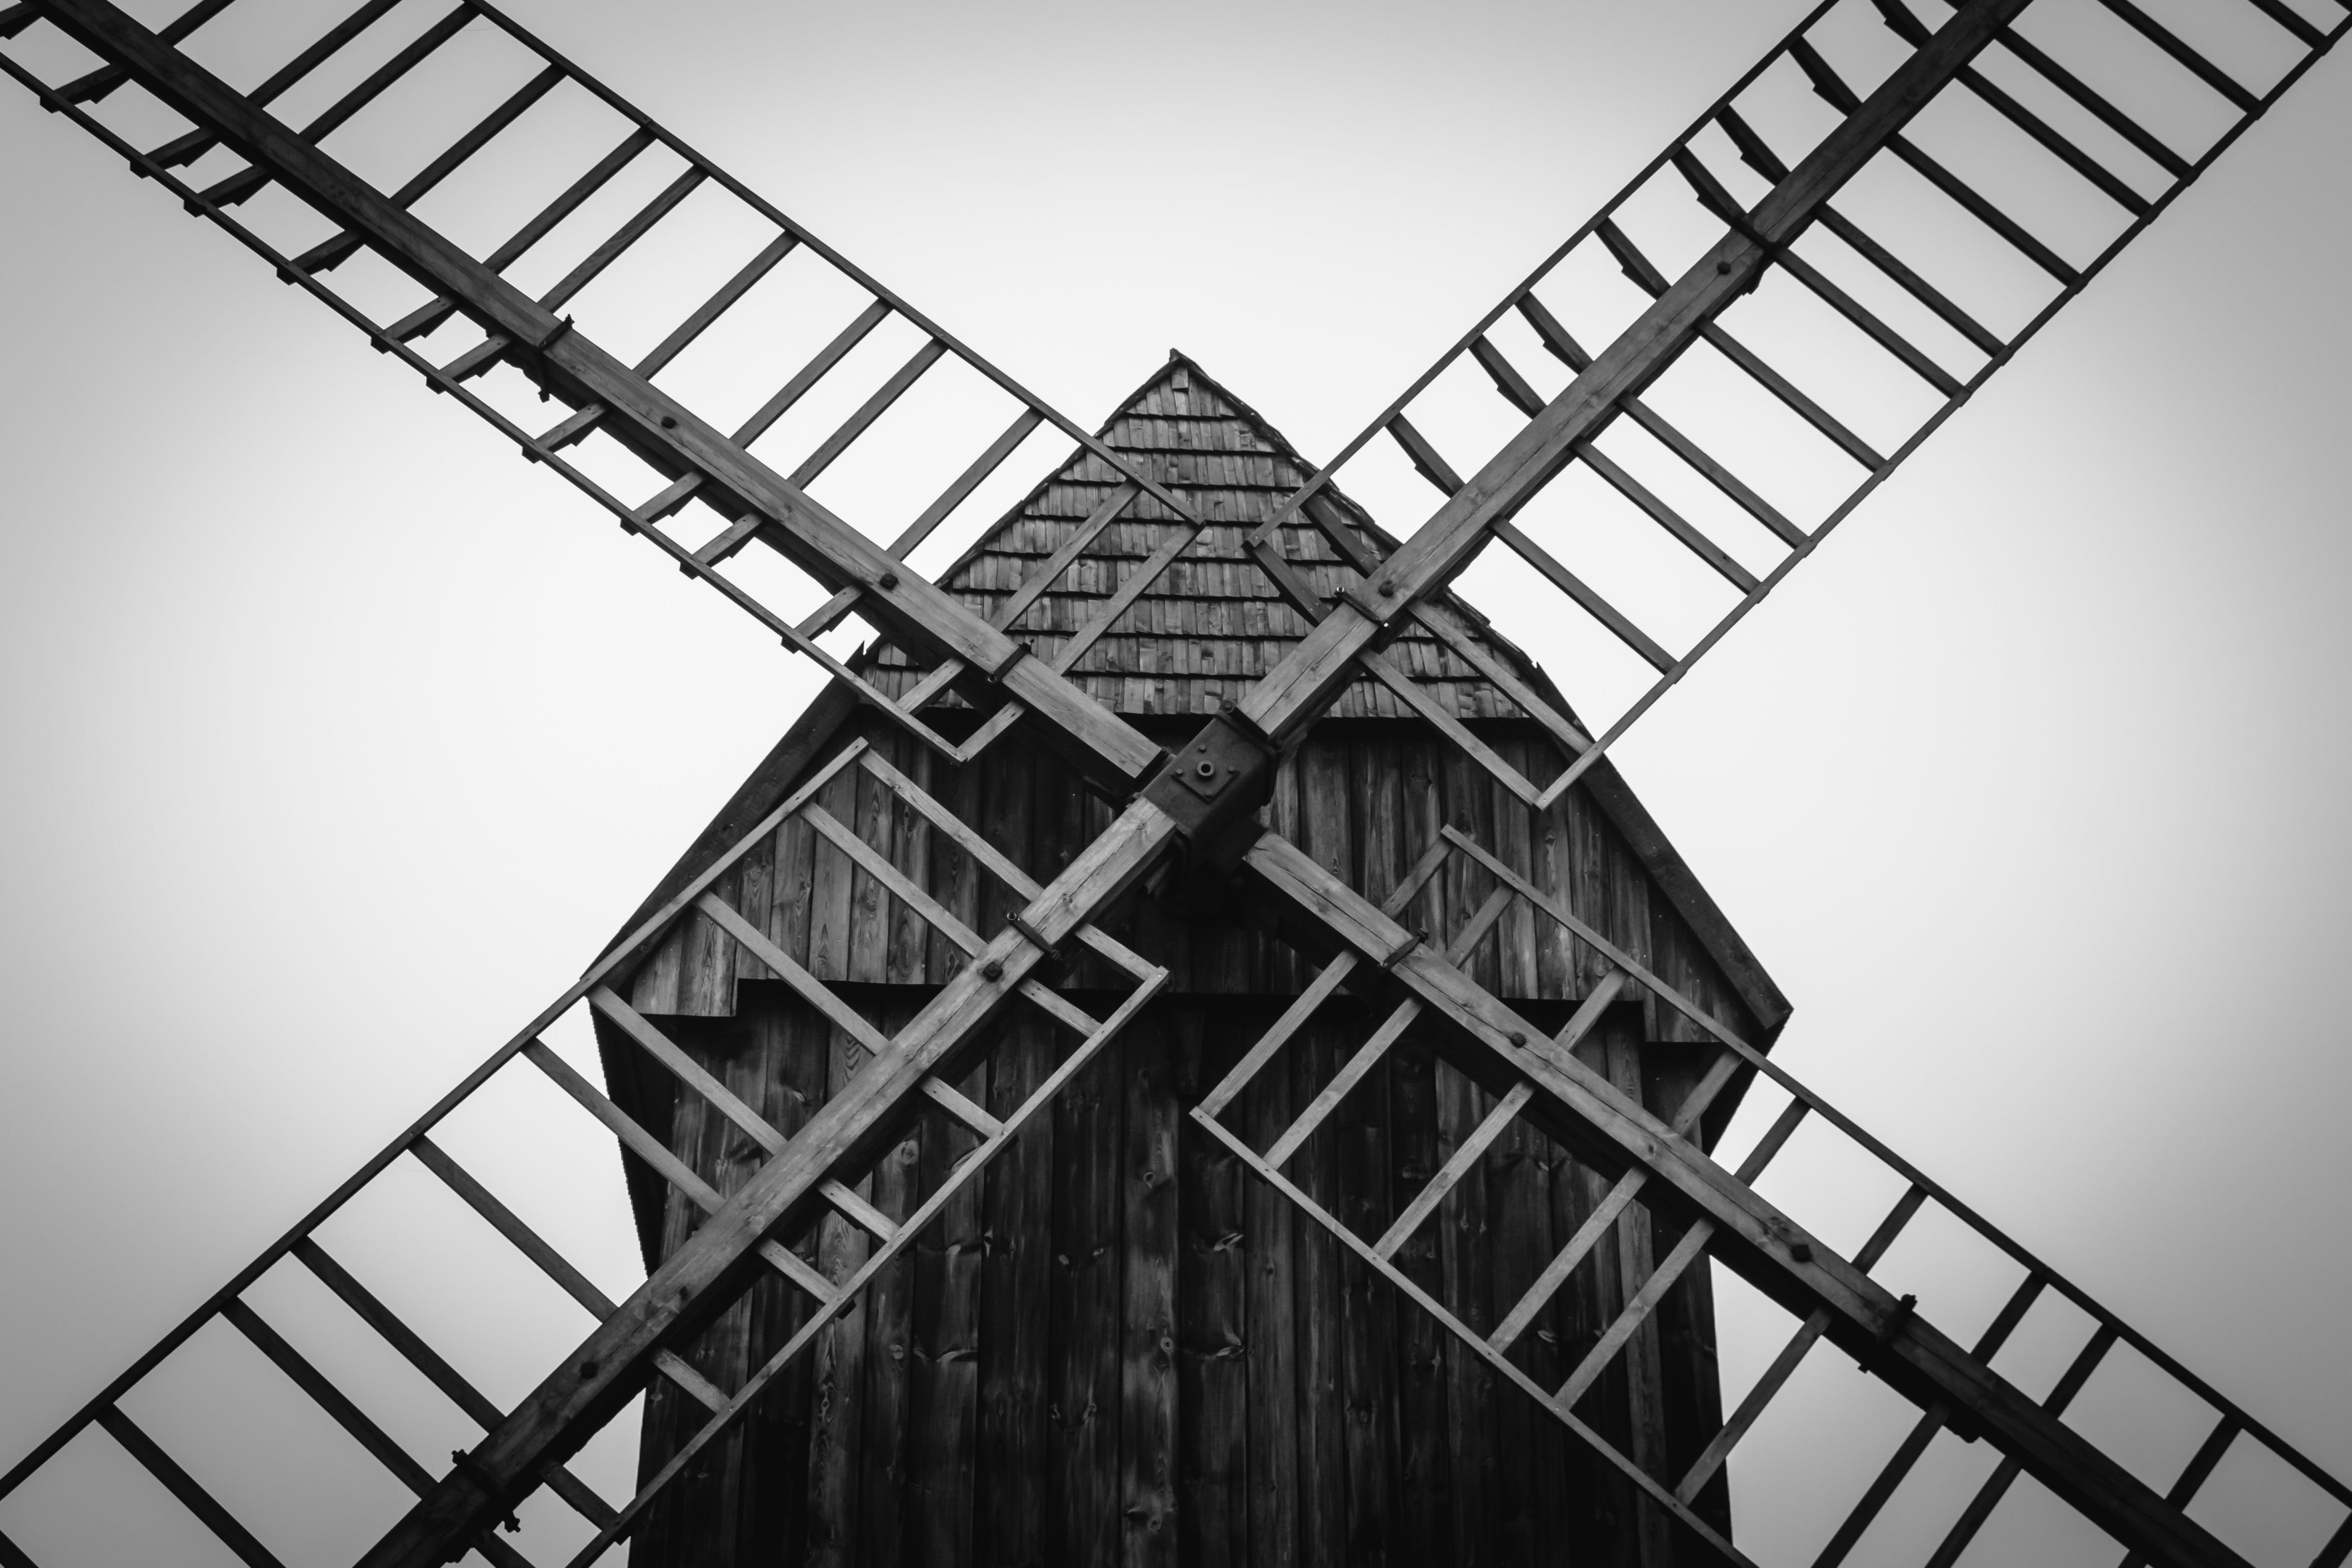 Grayscale Photo of Windmill